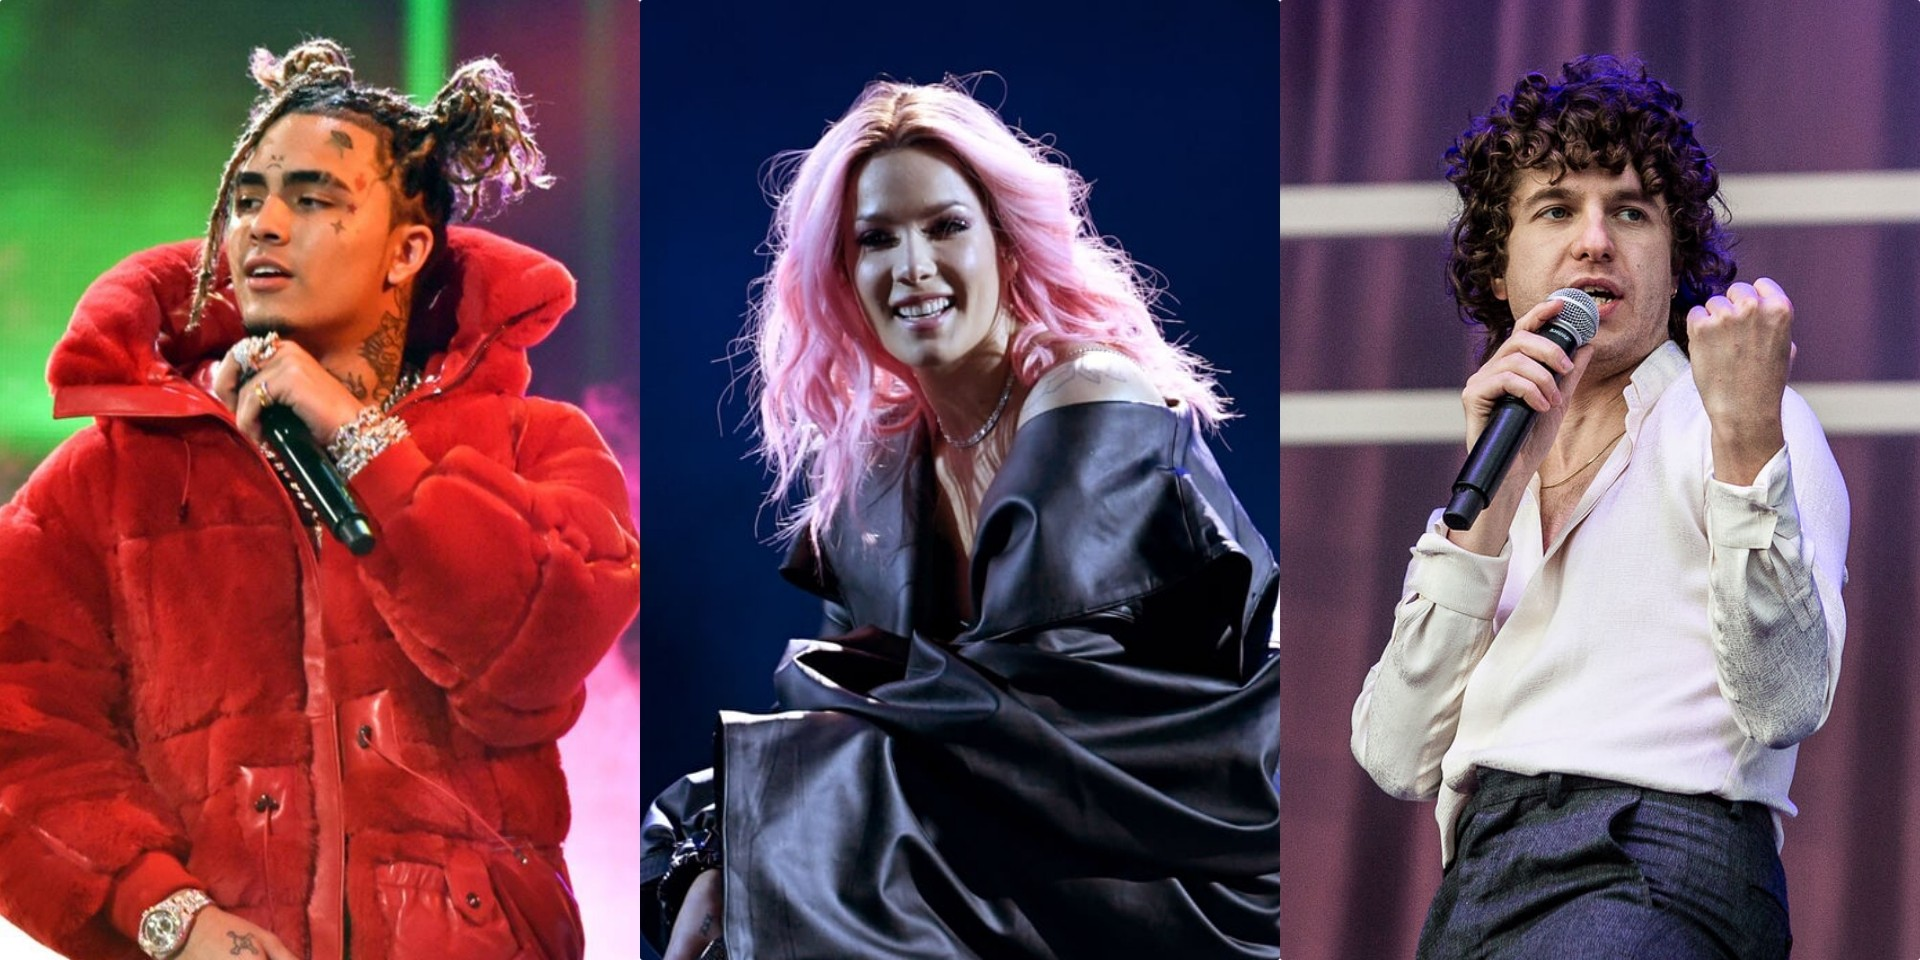 Halsey, Lil Pump, The Kooks and more to perform at Clockenflap 2019 in Hong Kong